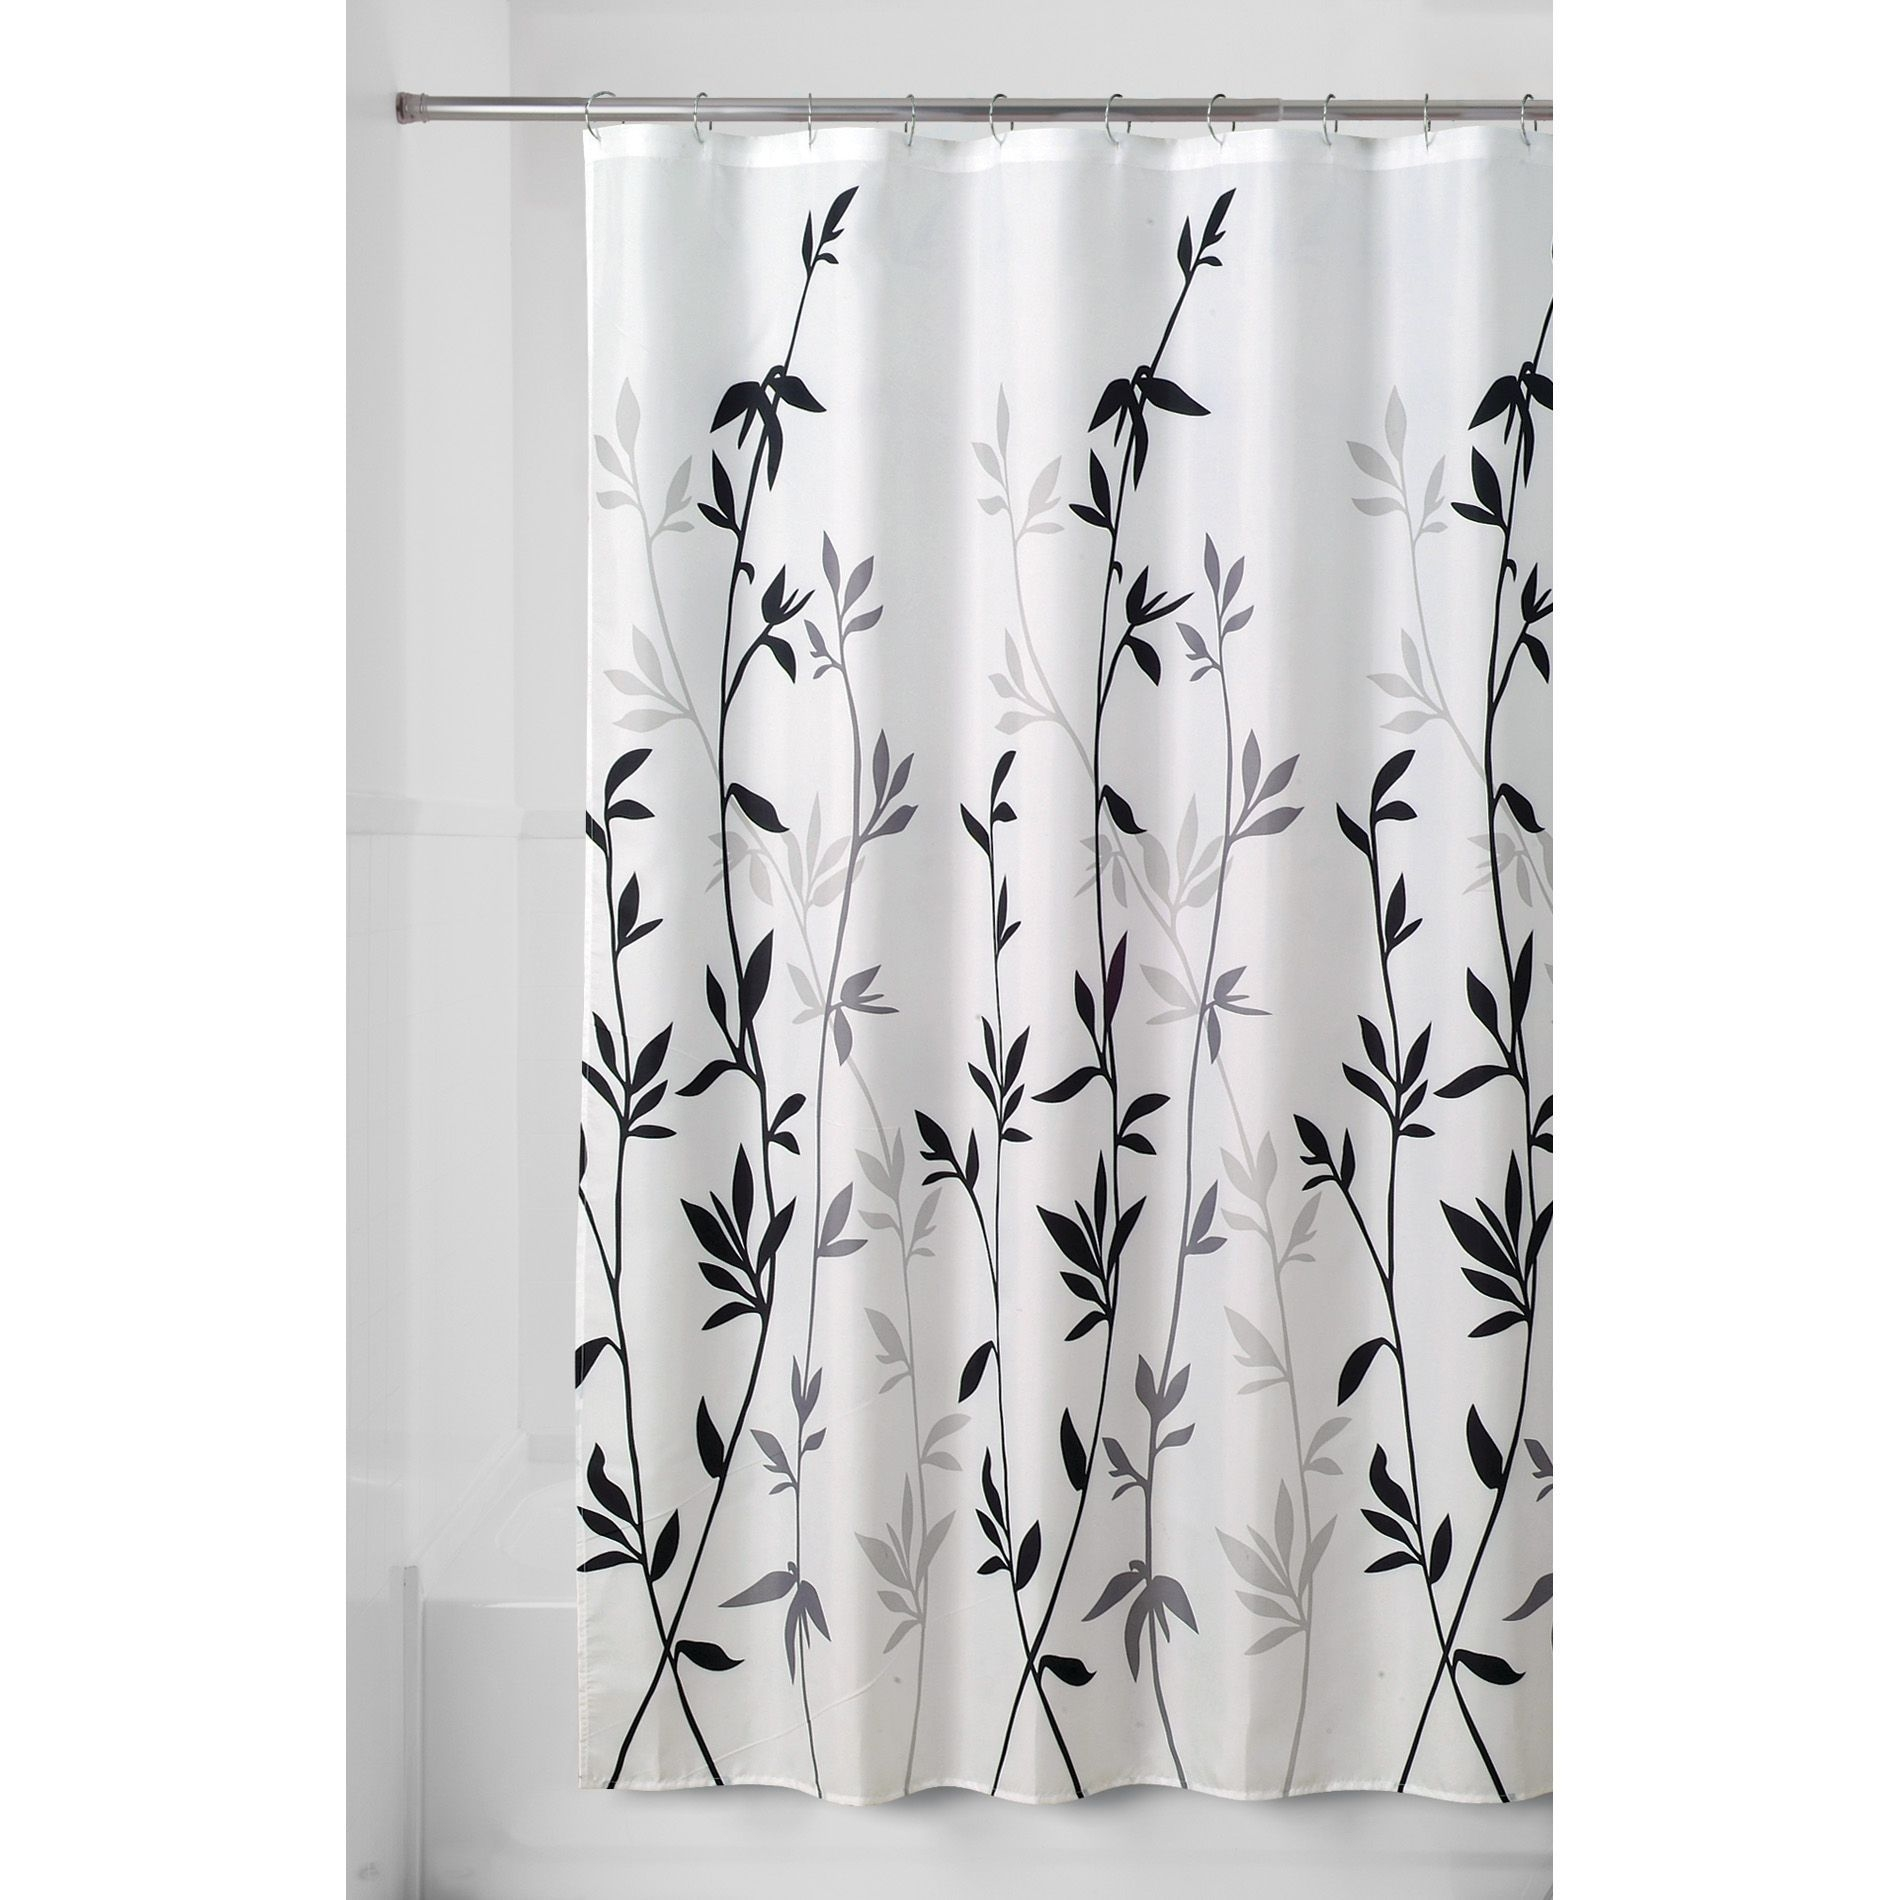 High Quality Curtains Kmart